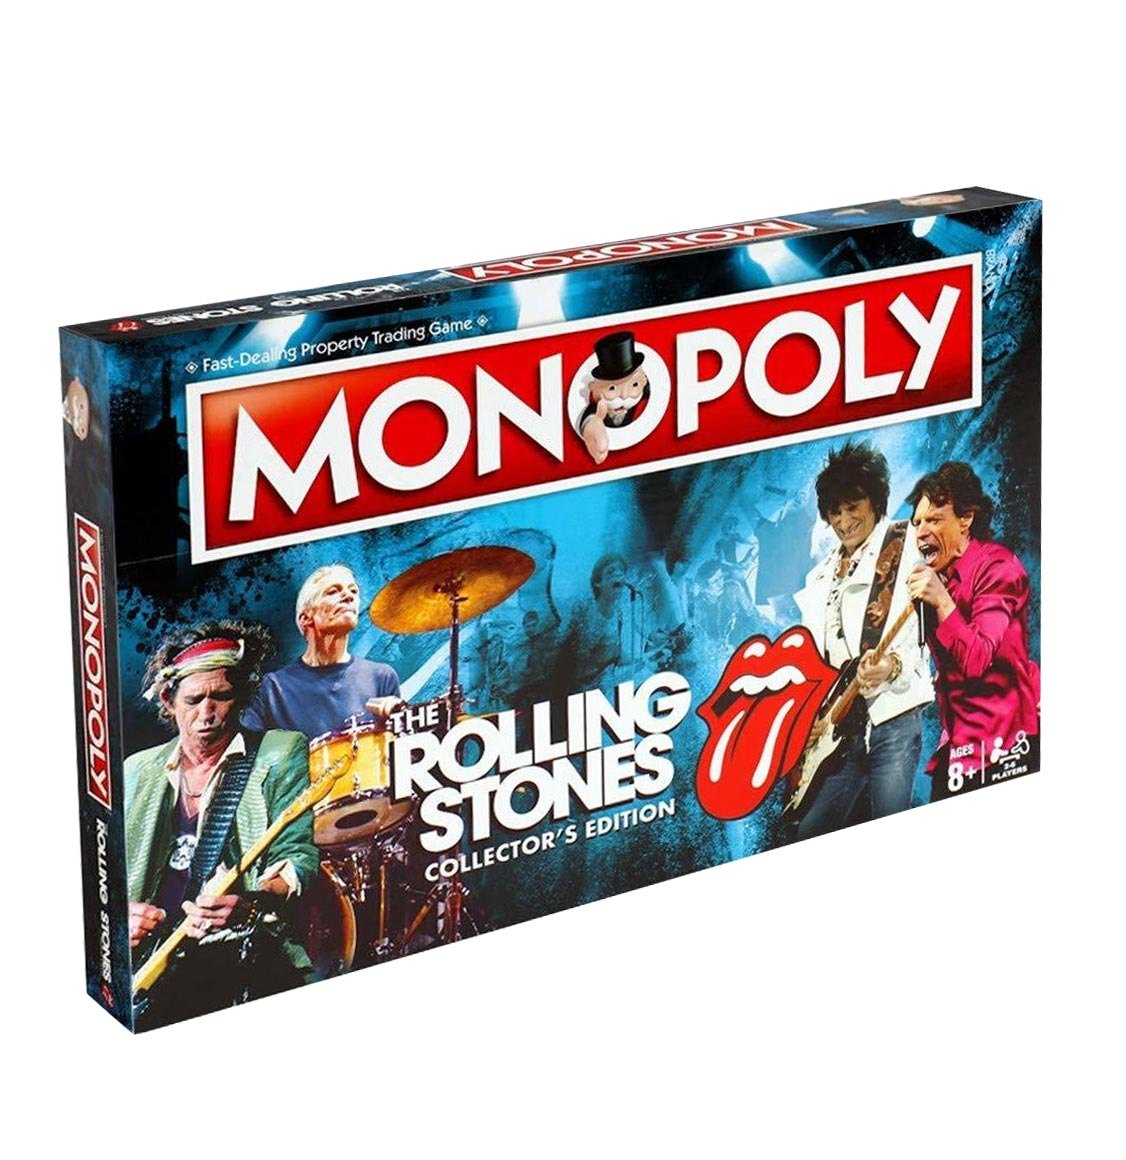 Monopoly The Rolling Stones English Collector's Edition